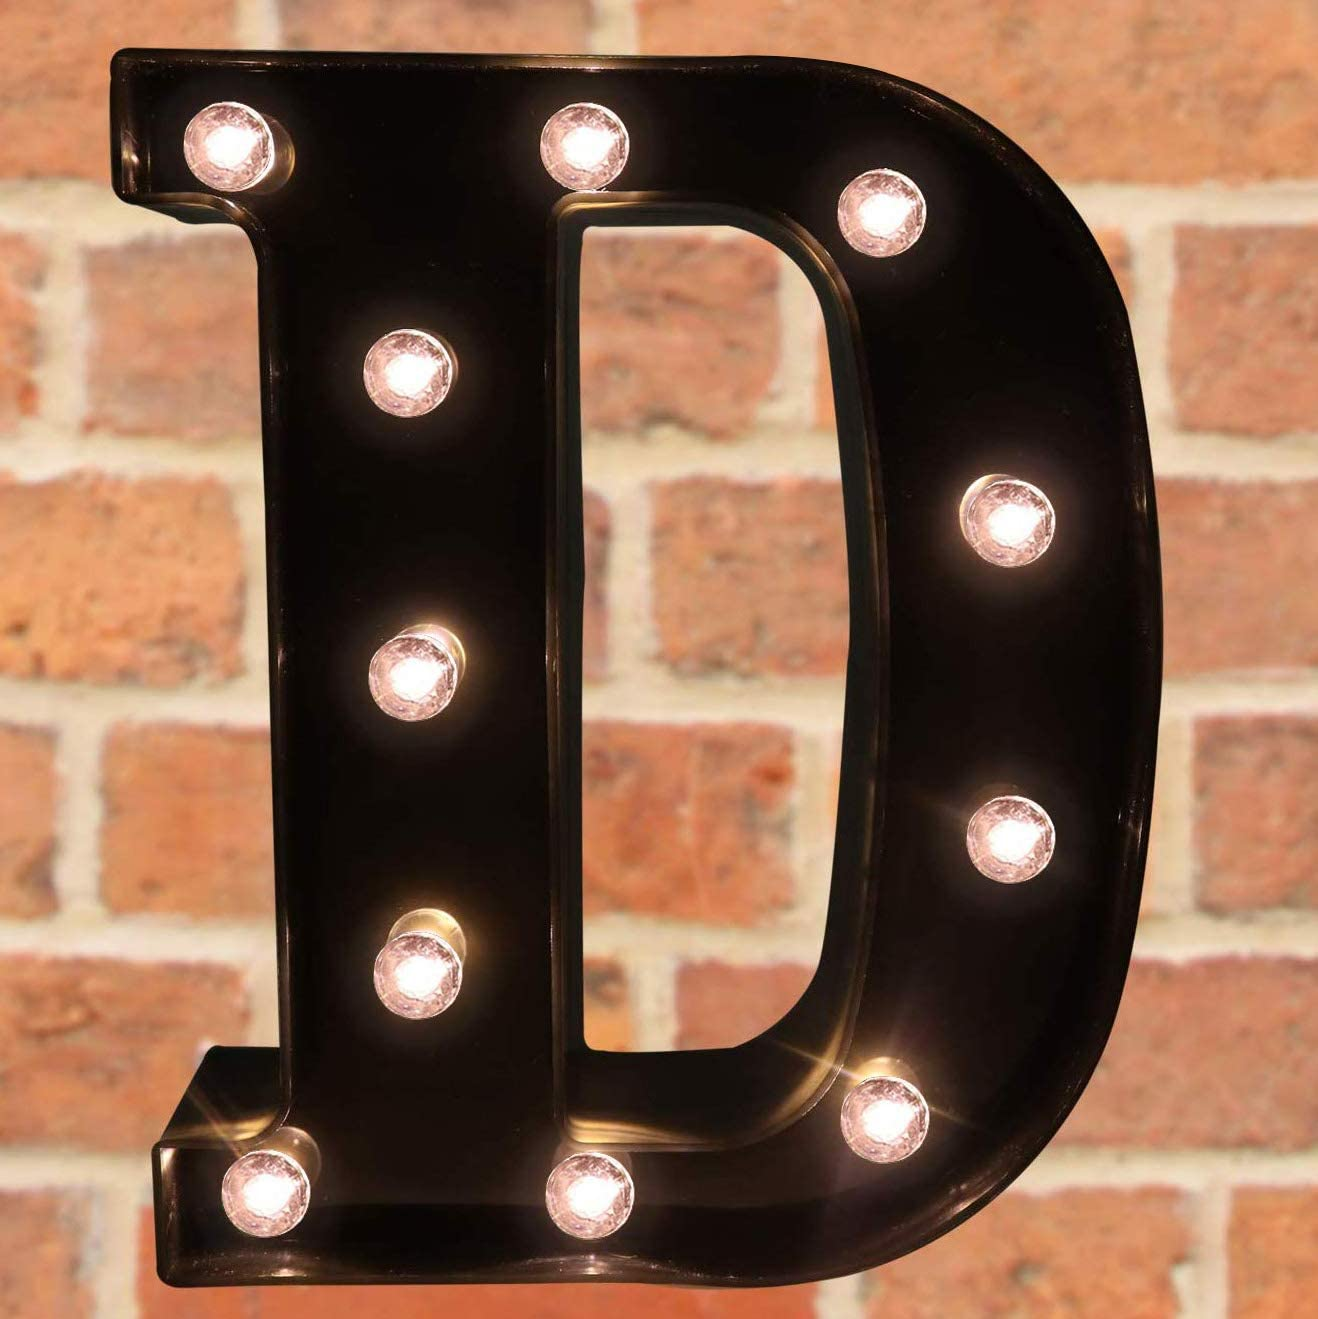 Decorative LED Illuminated Letter Marquee Sign - Alphabet Marquee Letters with Lights for Wedding Birthday Party Christmas Night Light Lamp Home Bar Decoration D, Black